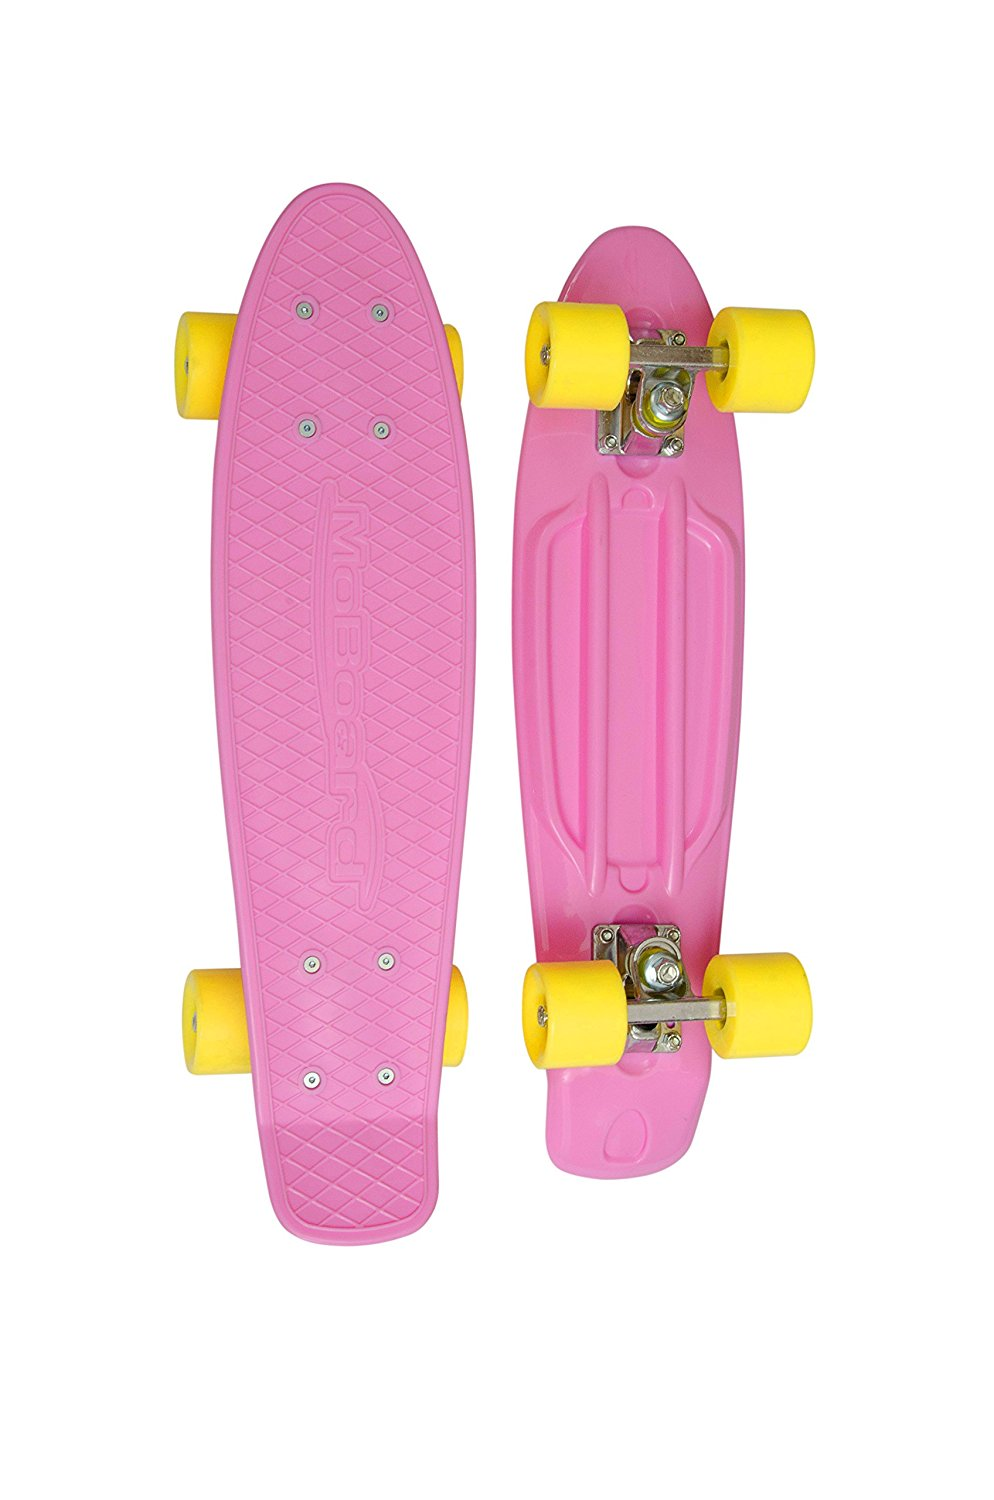 MoBoard Graphic Complete Skateboard ( Pink - Yellow)